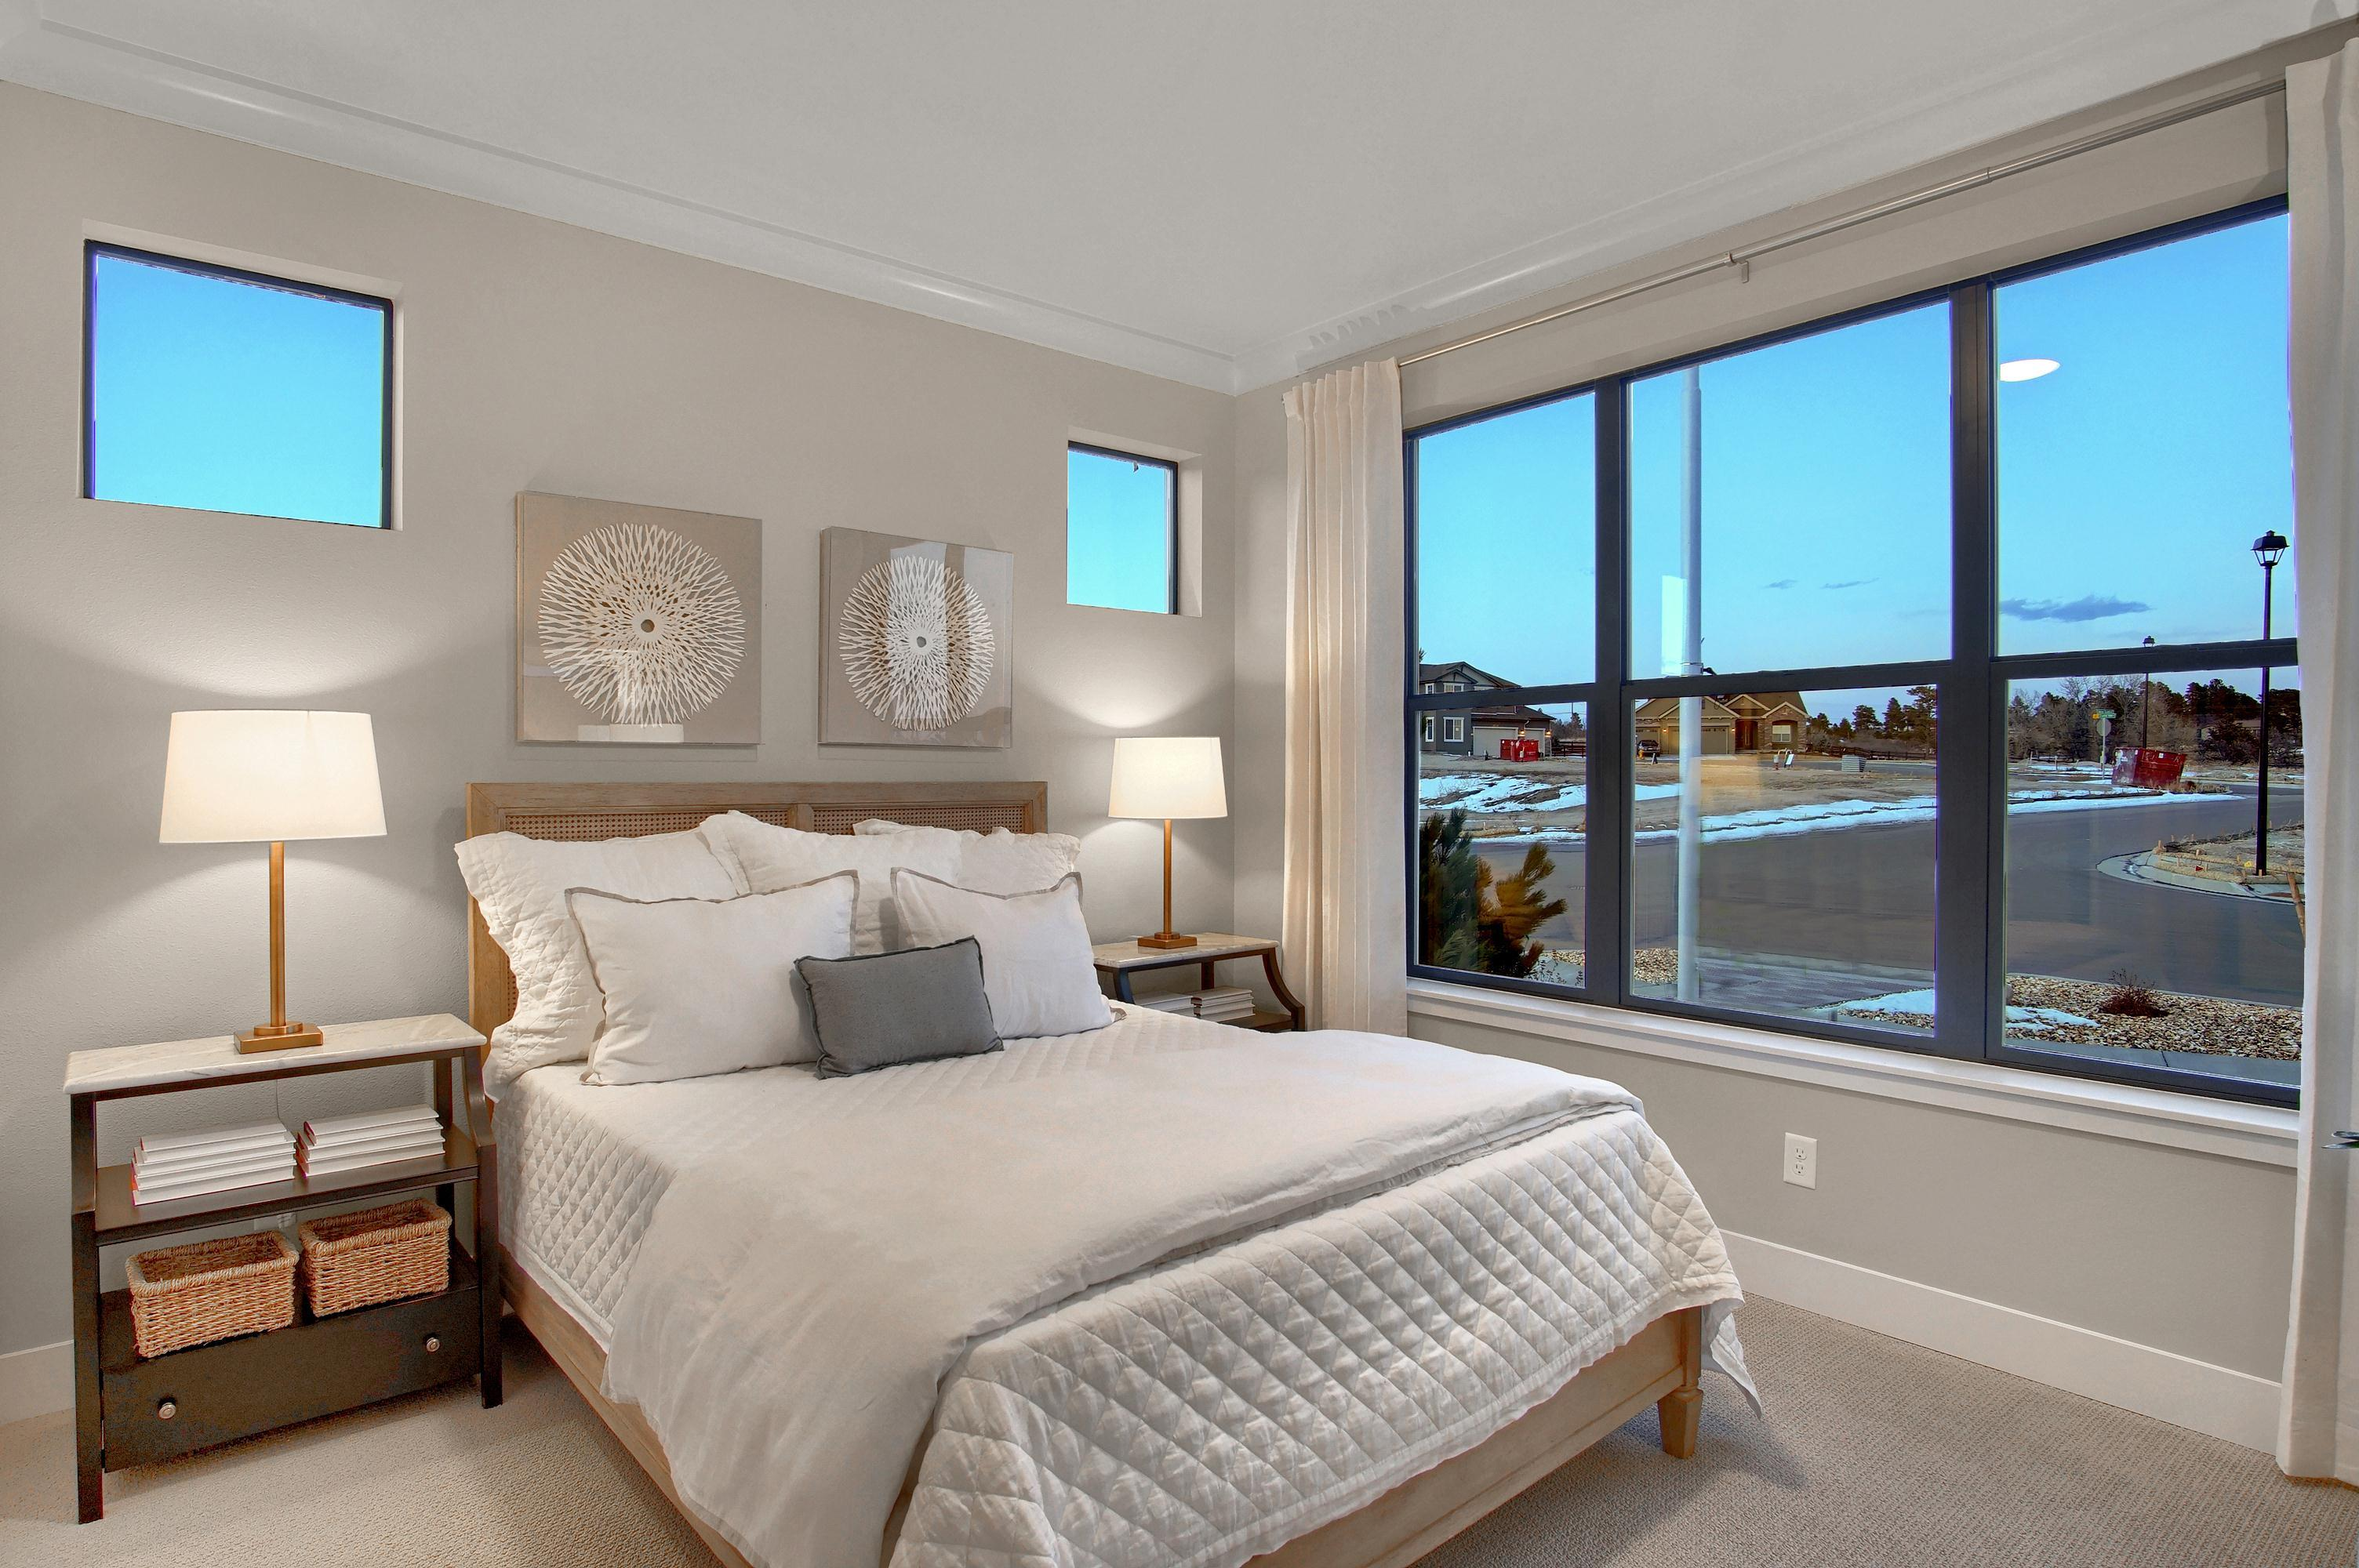 Bedroom featured in the Mackintosh By Keller Homes, A Toll Bros. Co. in Colorado Springs, CO